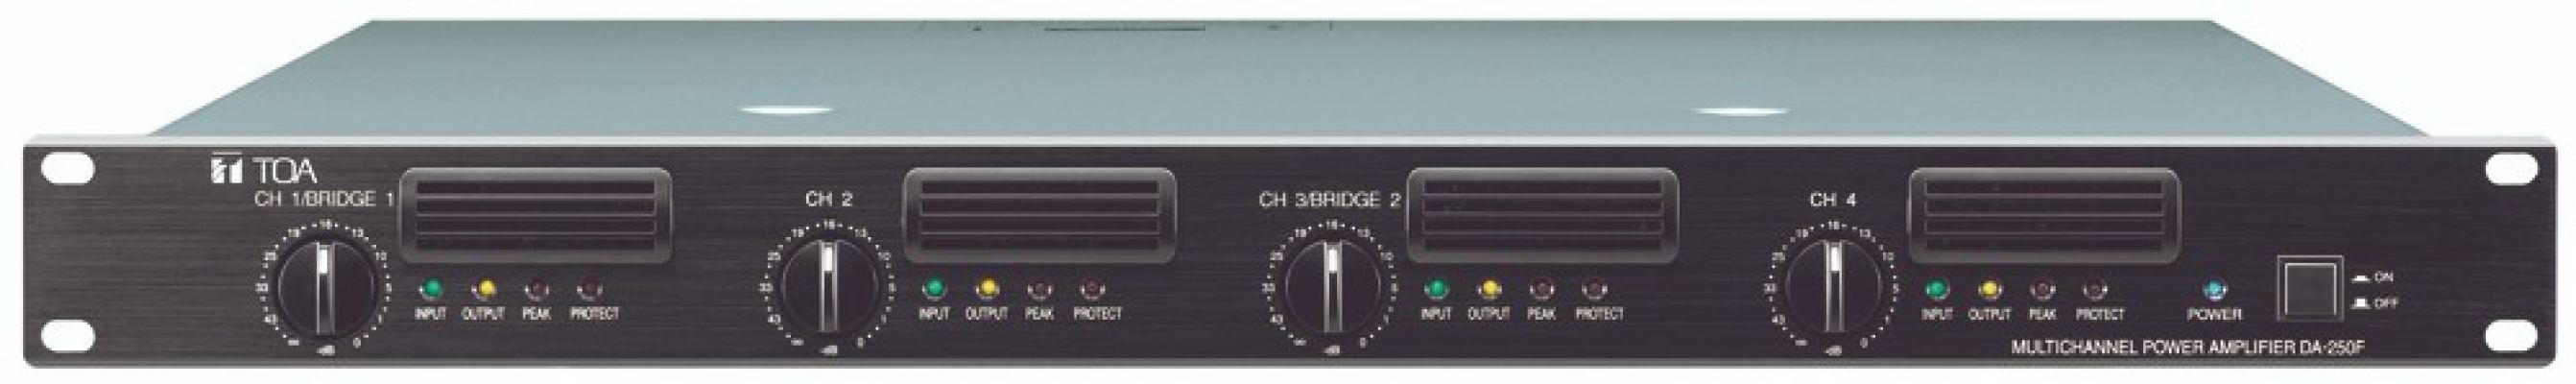 DA-250FH.Multichannel Power Amplifier